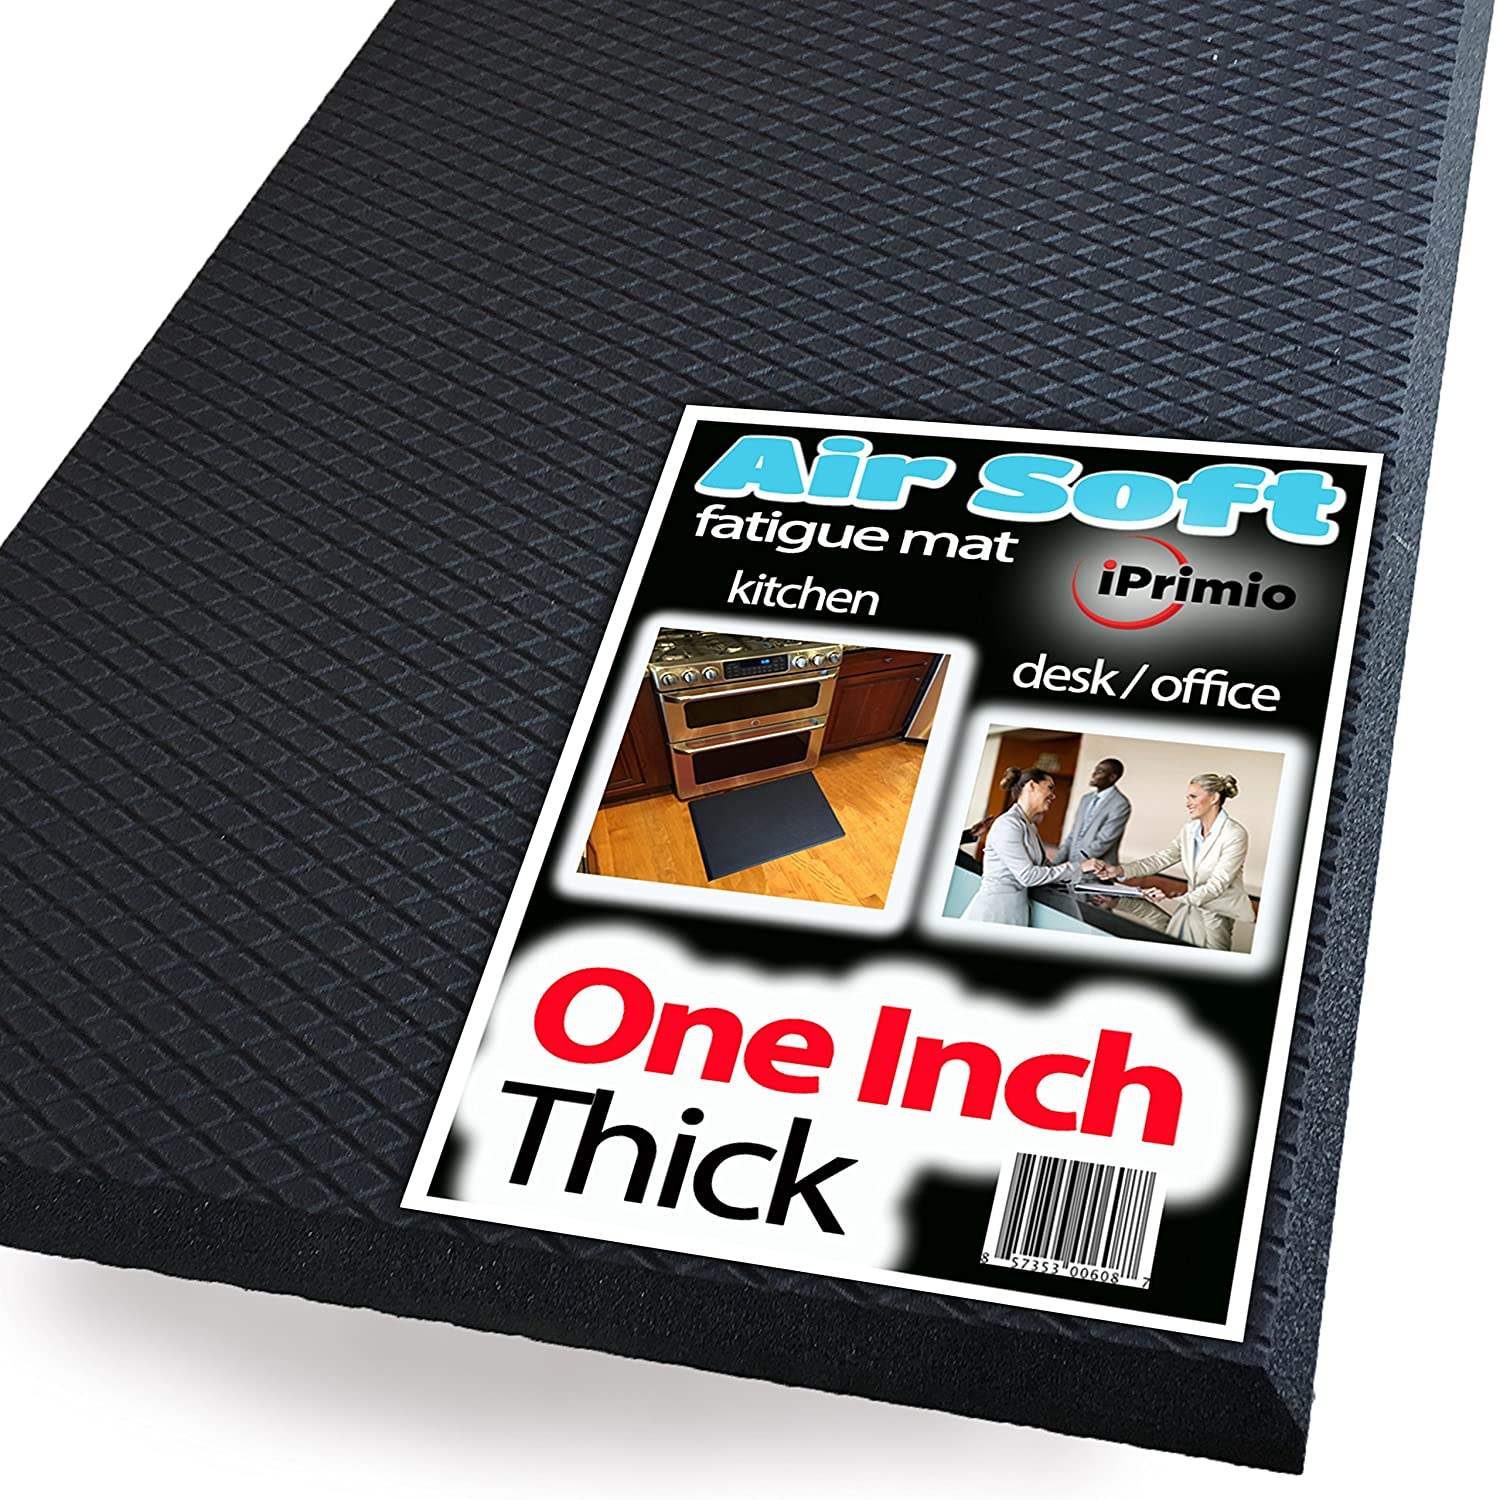 Extra Thick ONE INCH, Standing Anti Fatigue AIR SOFT Mat - LARGE Size 36